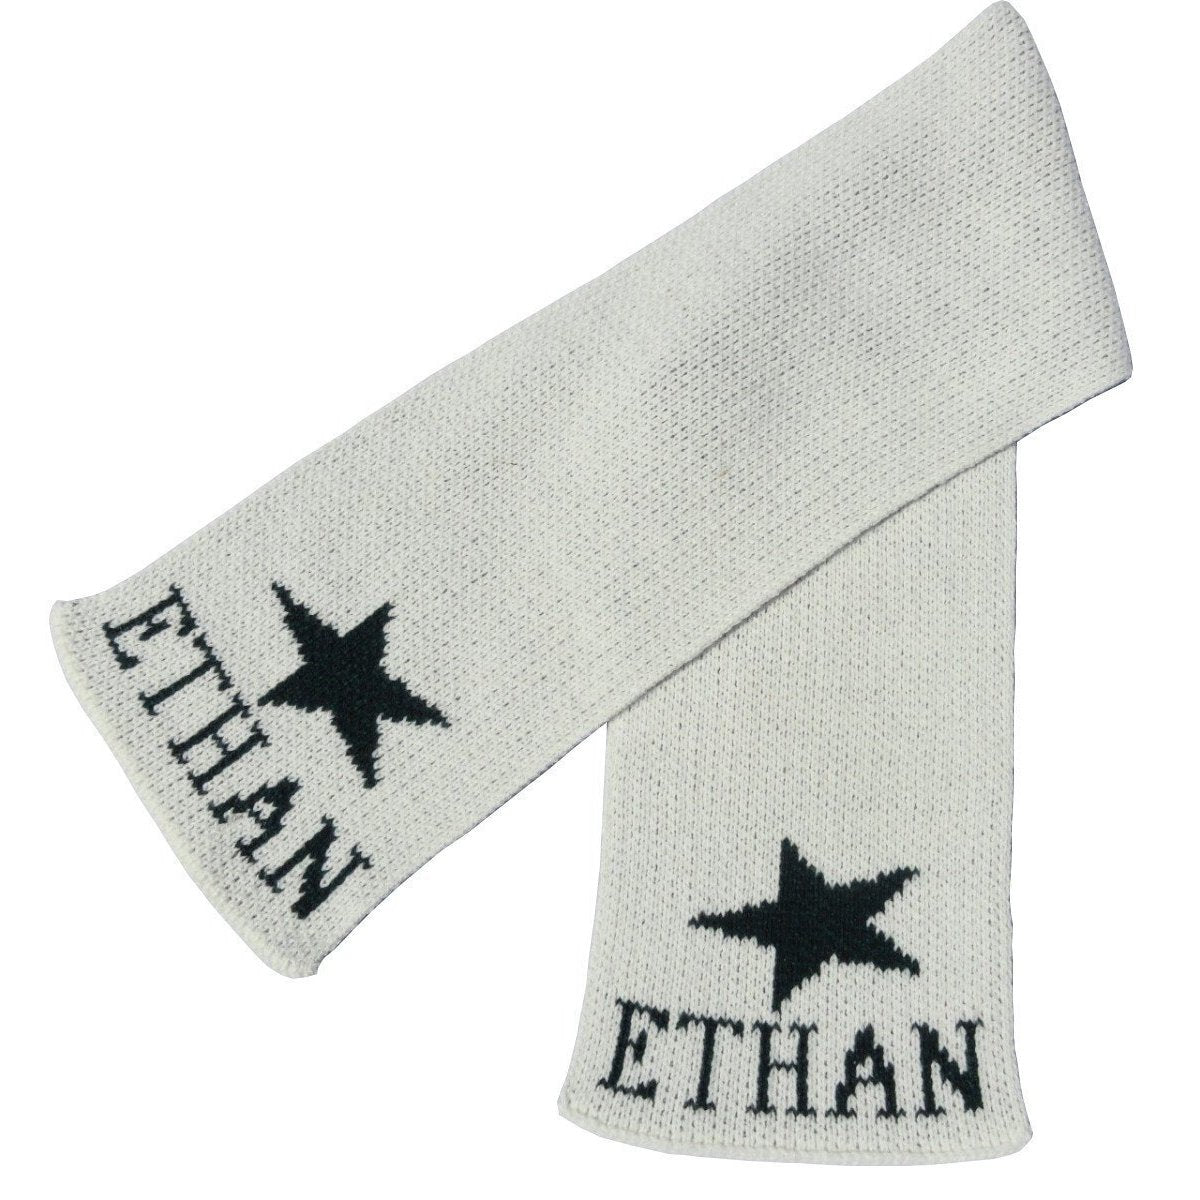 Single Star Personalized Knit Scarf-Scarves-Default-Jack and Jill Boutique